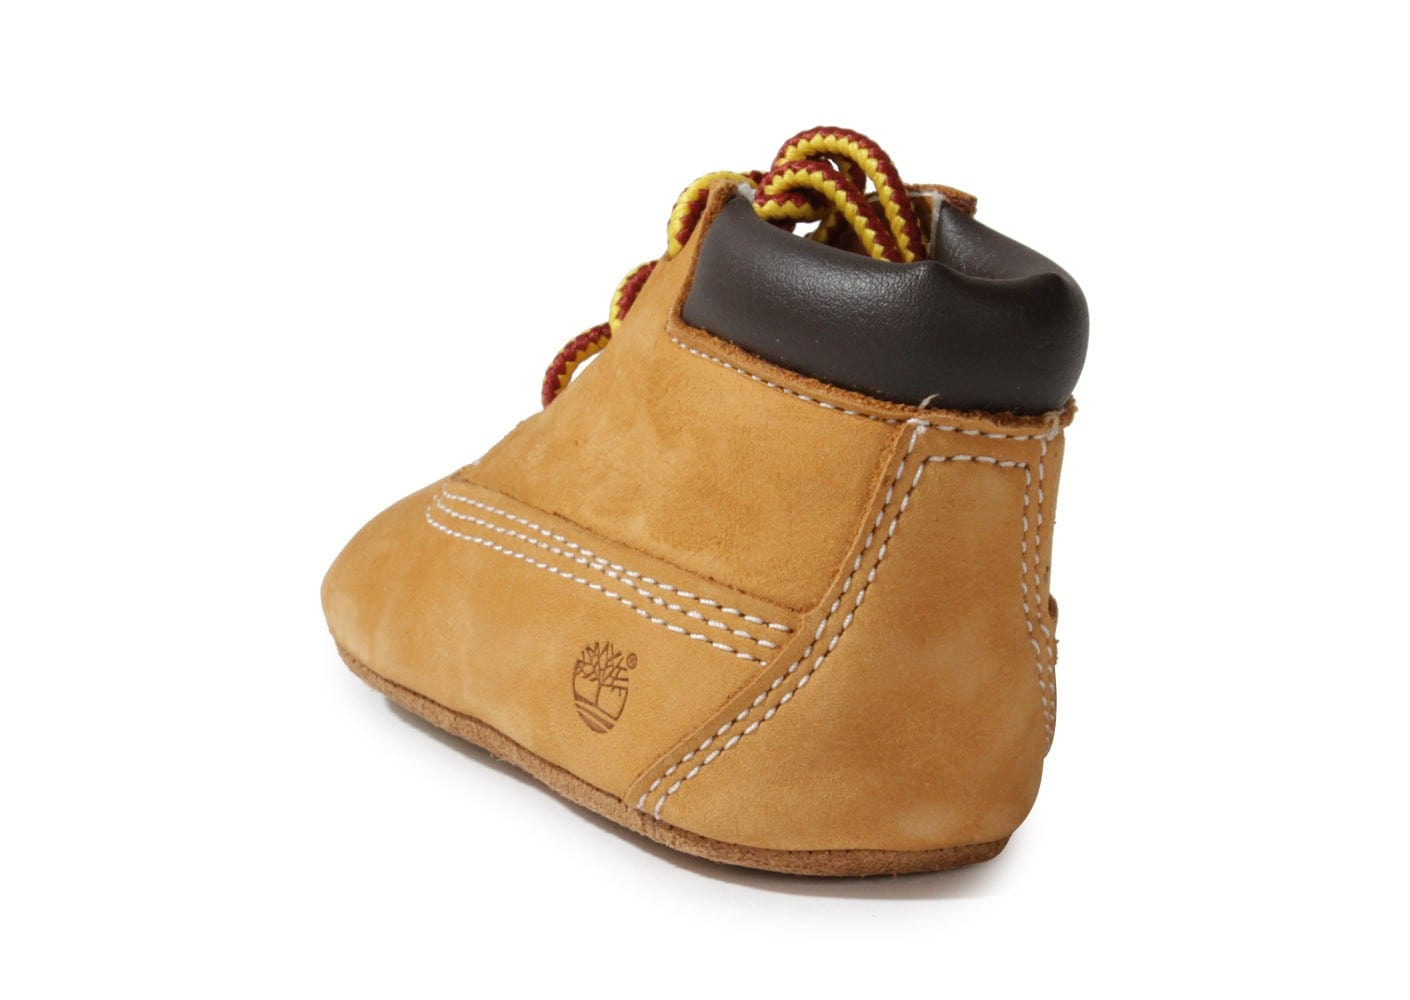 Enfant Boots Crib Pack Chaussures Inch Bonnet Beige Timberland 6 odeWrCxB